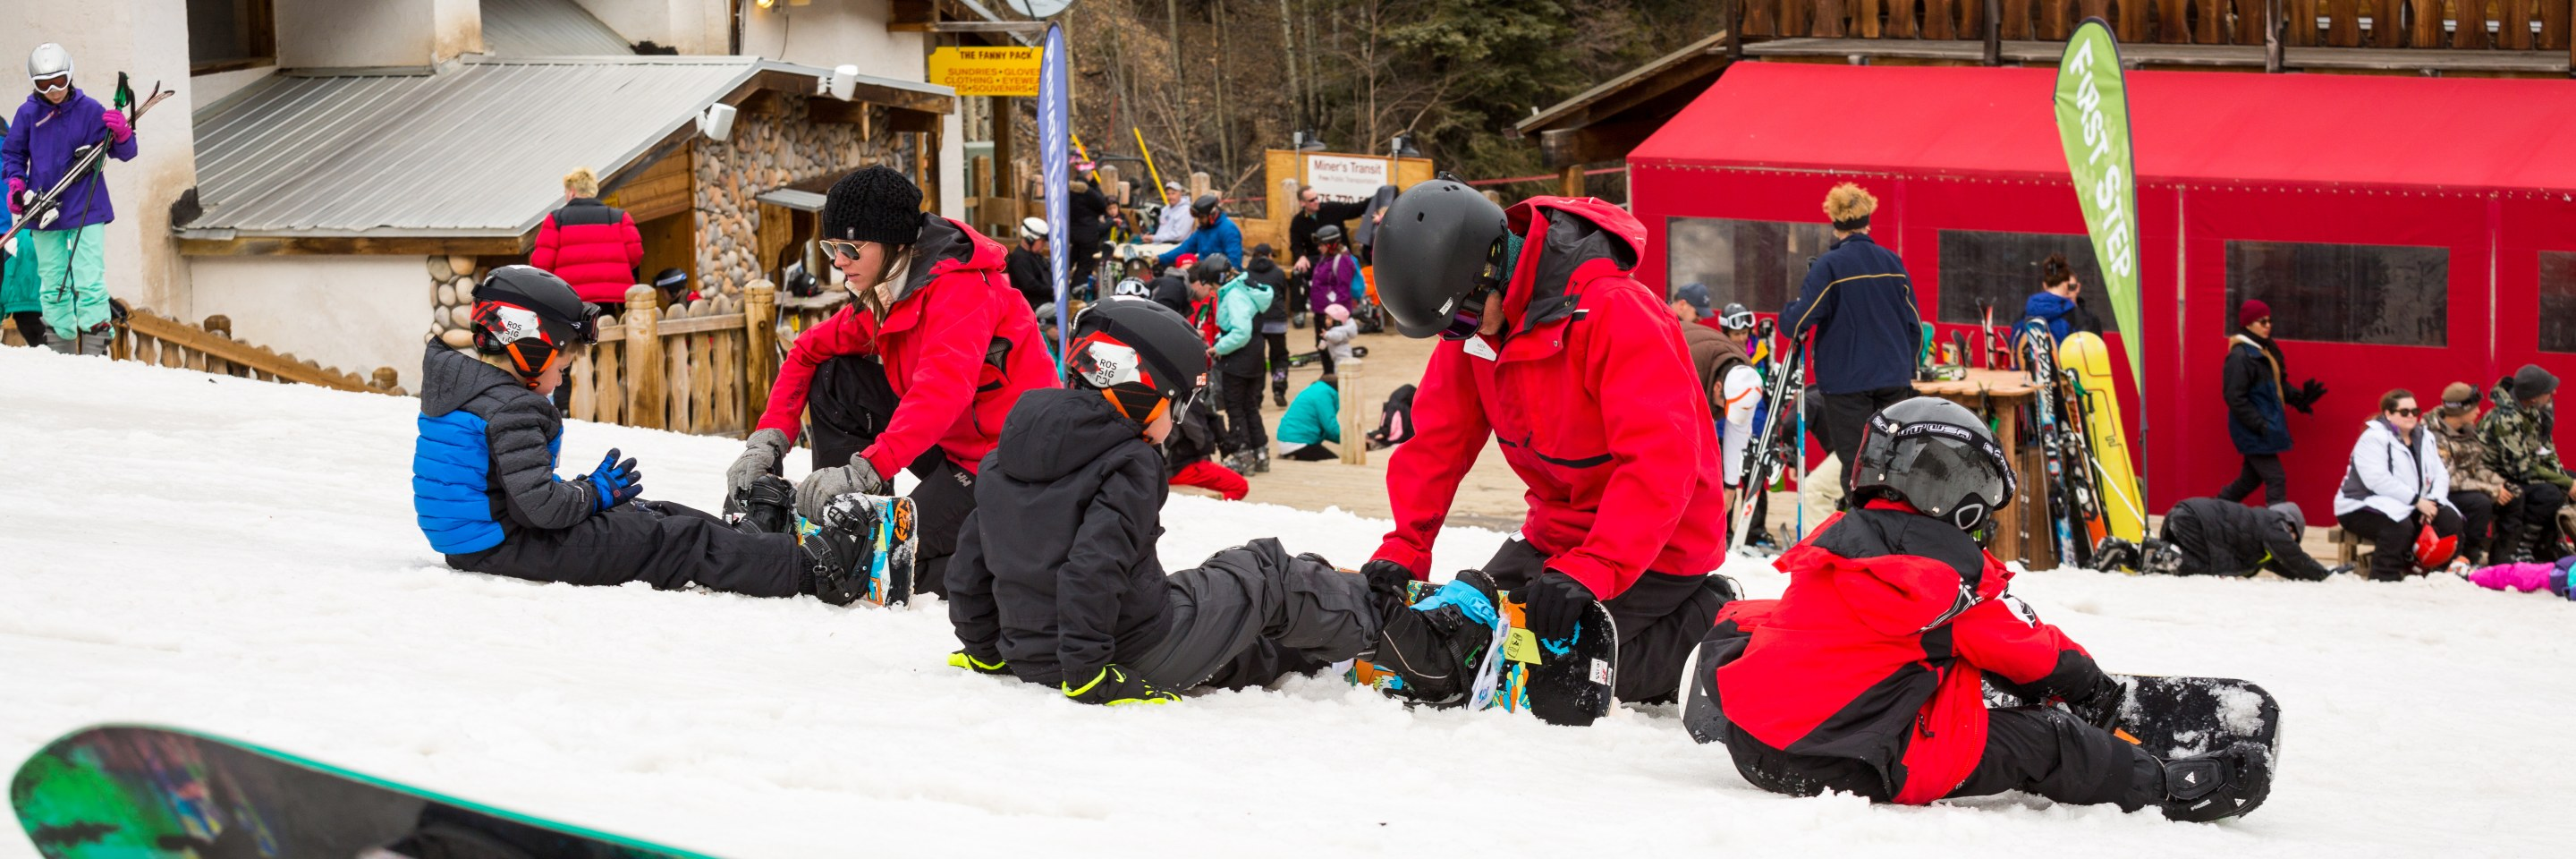 snowboard coaches teaching a lesson